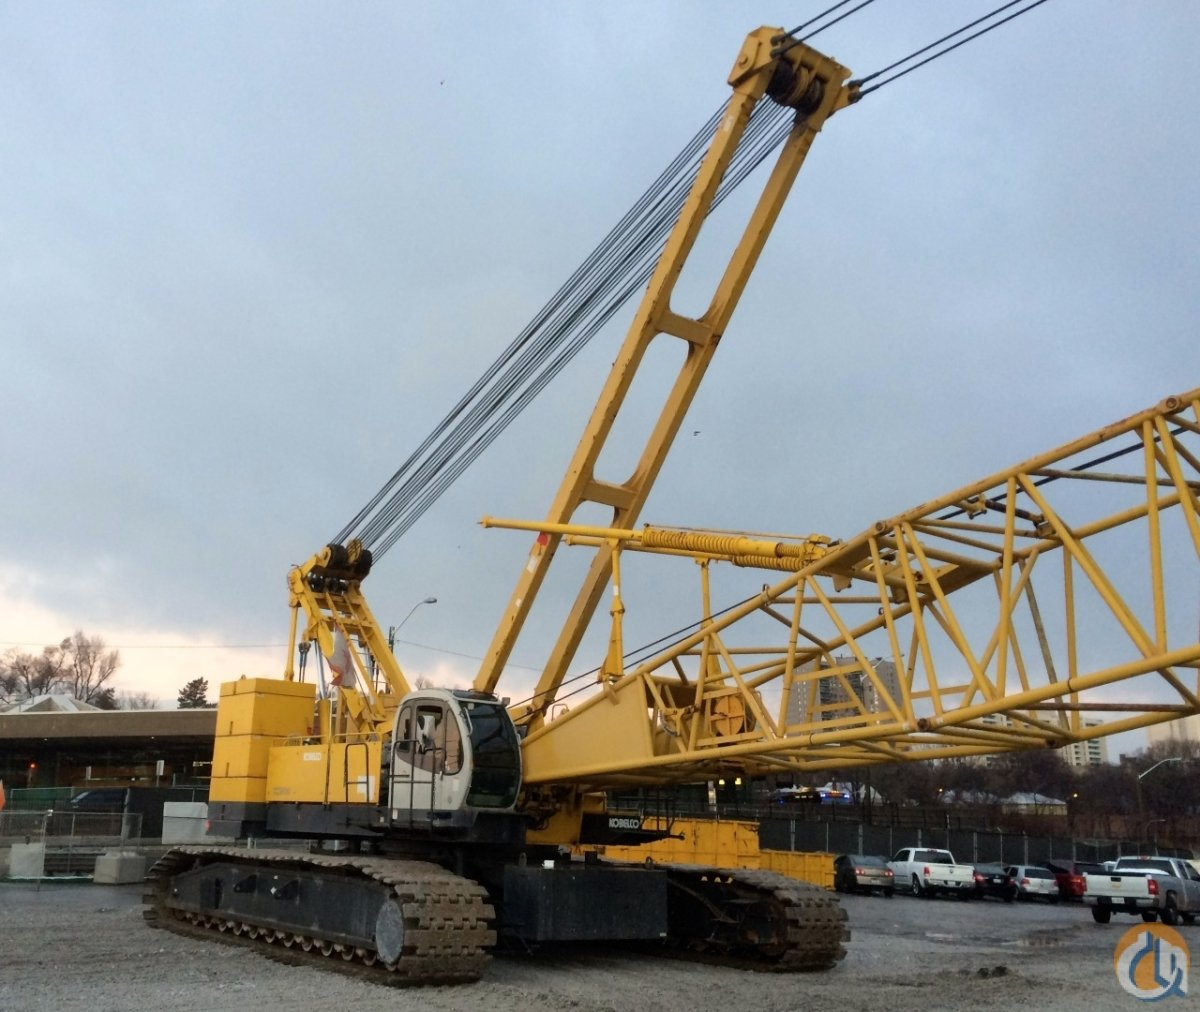 2004 KOBELCO CK-2500 250 TON CRAWLER CRANE Crane for Sale in New York New York on CraneNetworkcom